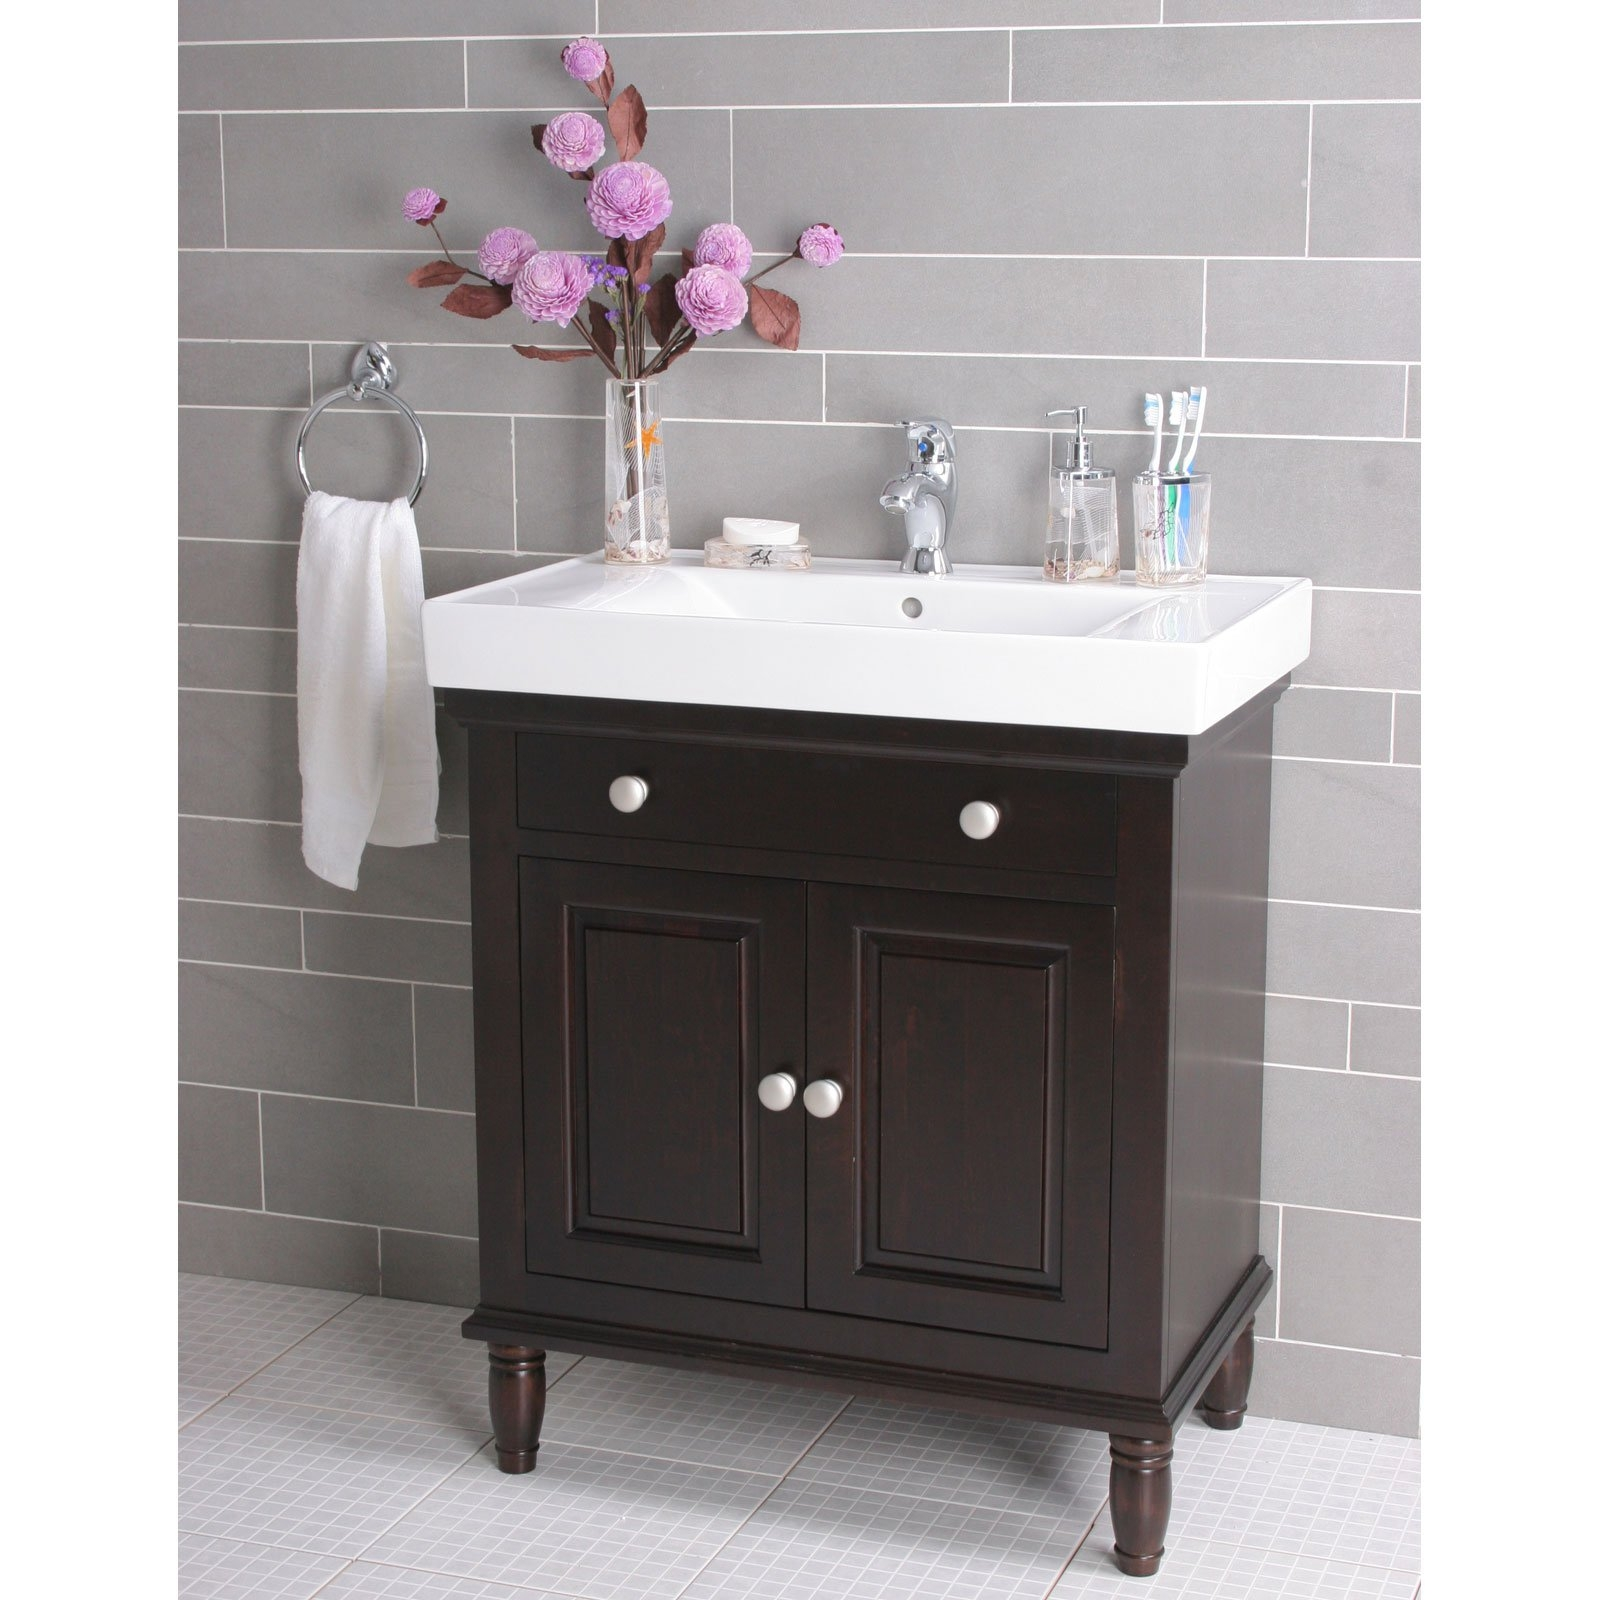 18 Depth Bathroom Vanity Cabinet